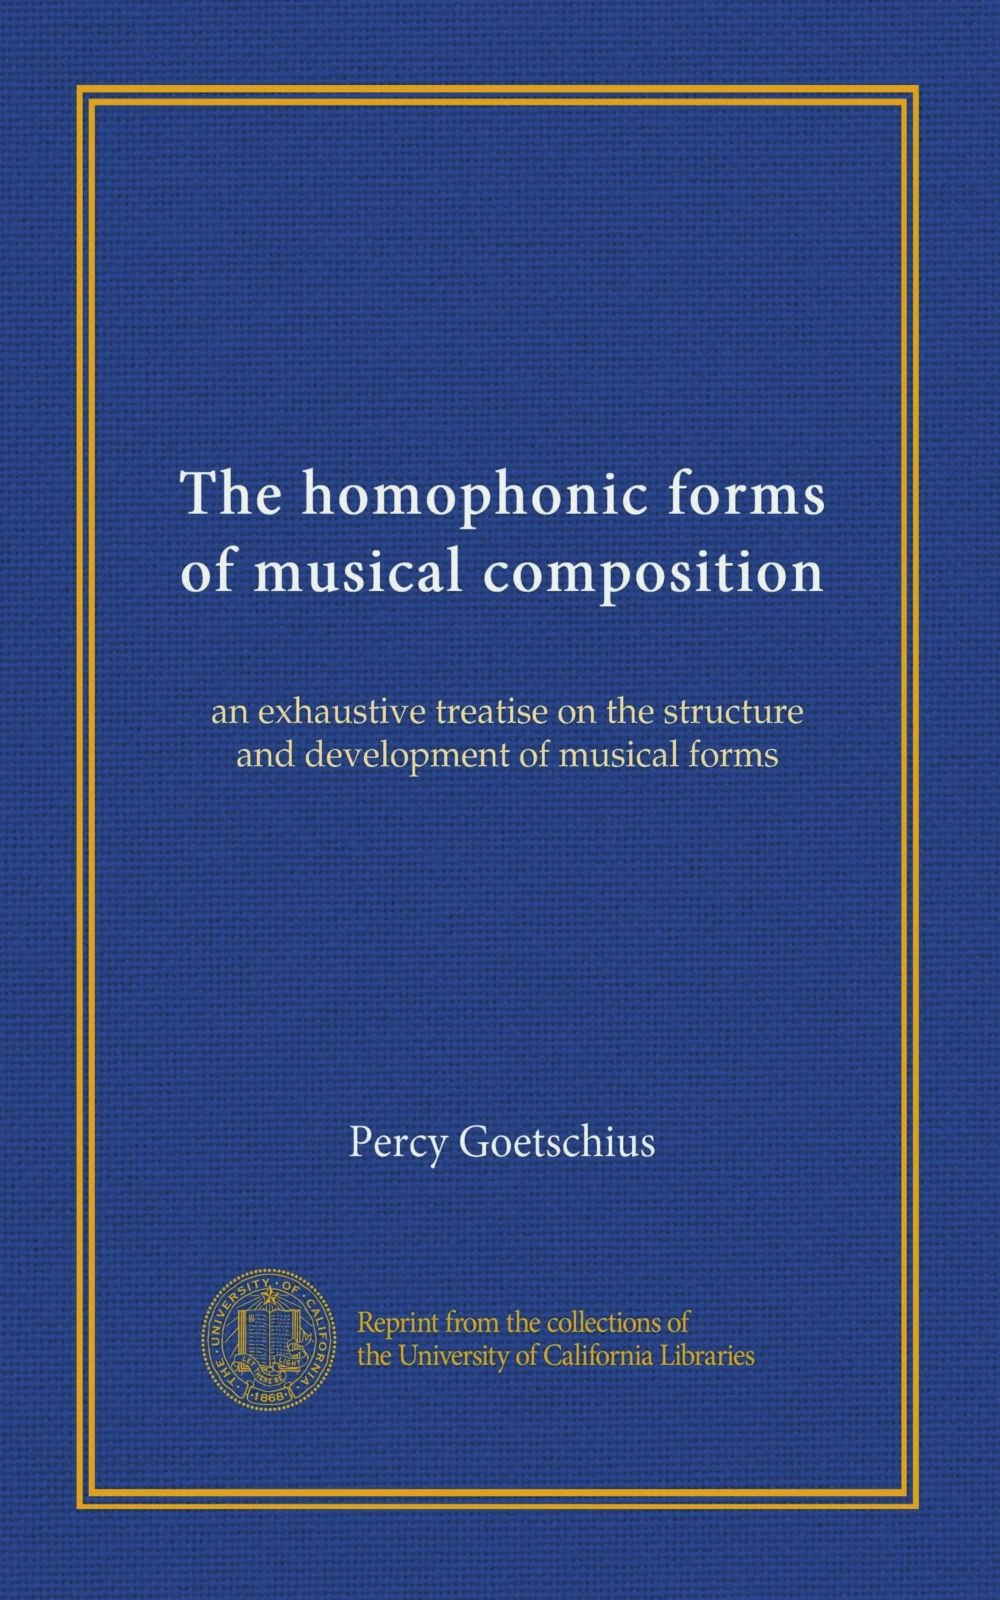 The homophonic forms of musical composition: an exhaustive treatise on the structure and development of musical forms ebook